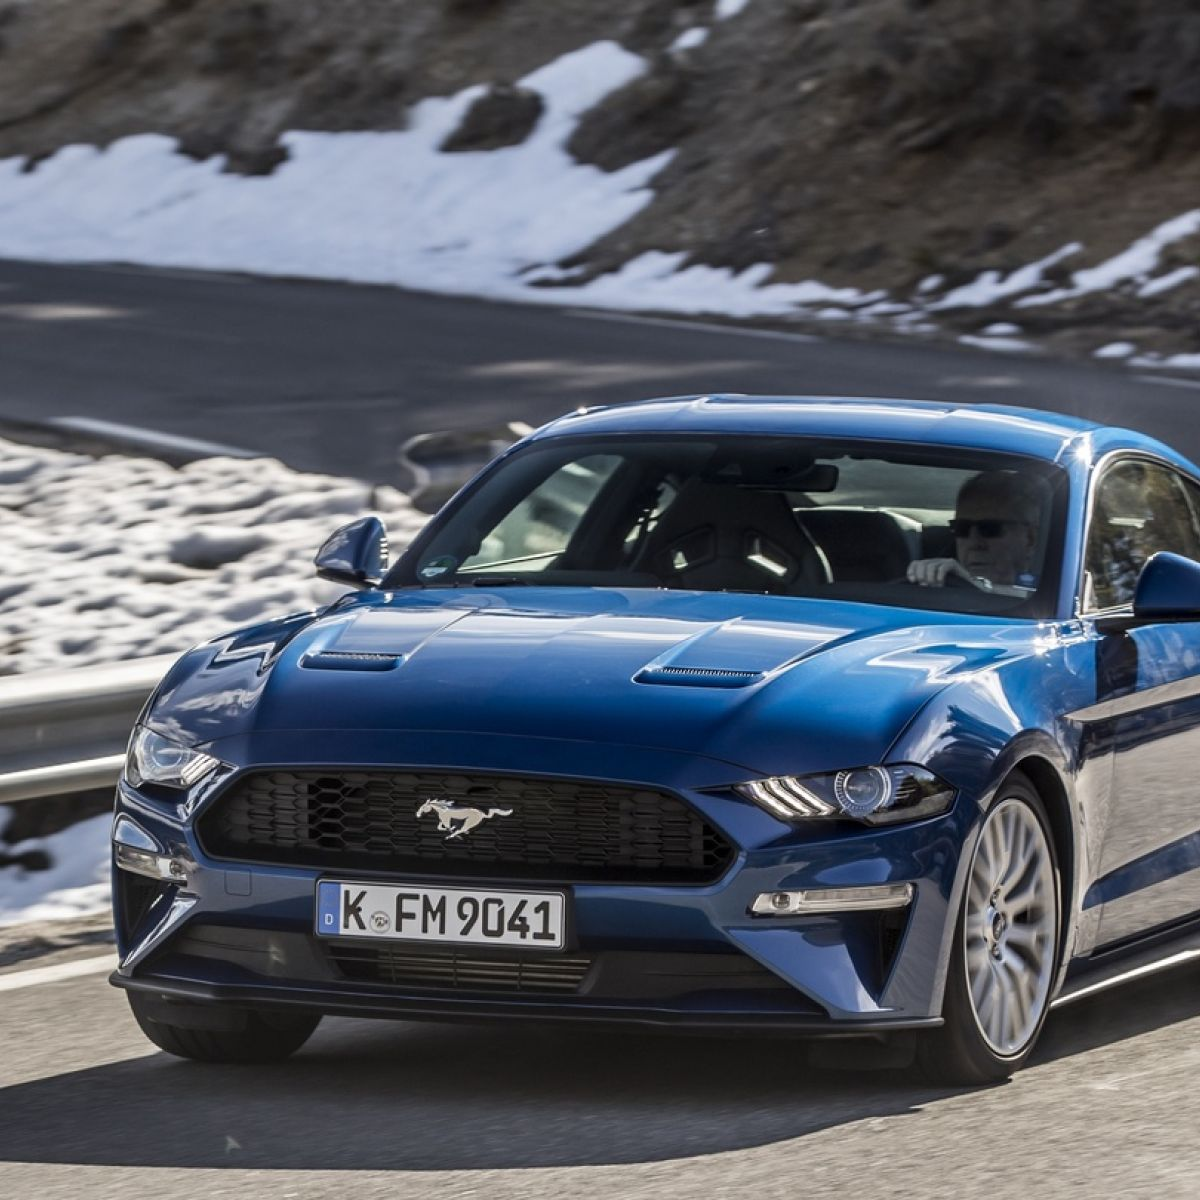 Fords mustang gets a mid life makeover but its still pricey